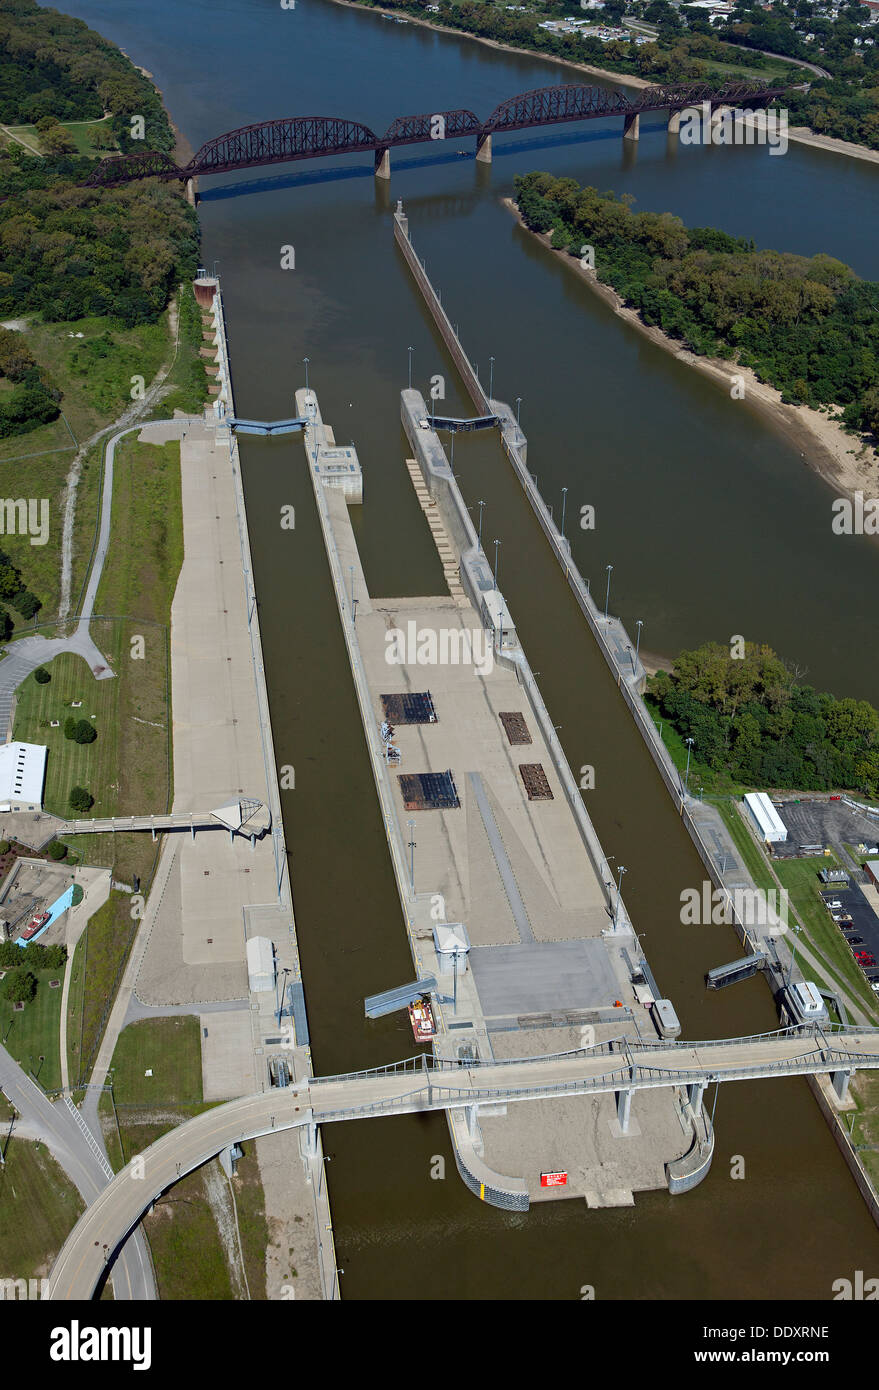 aerial photograph McAlpine Locks and Dam, Ohio River at Louisville, Kentucky - Stock Image